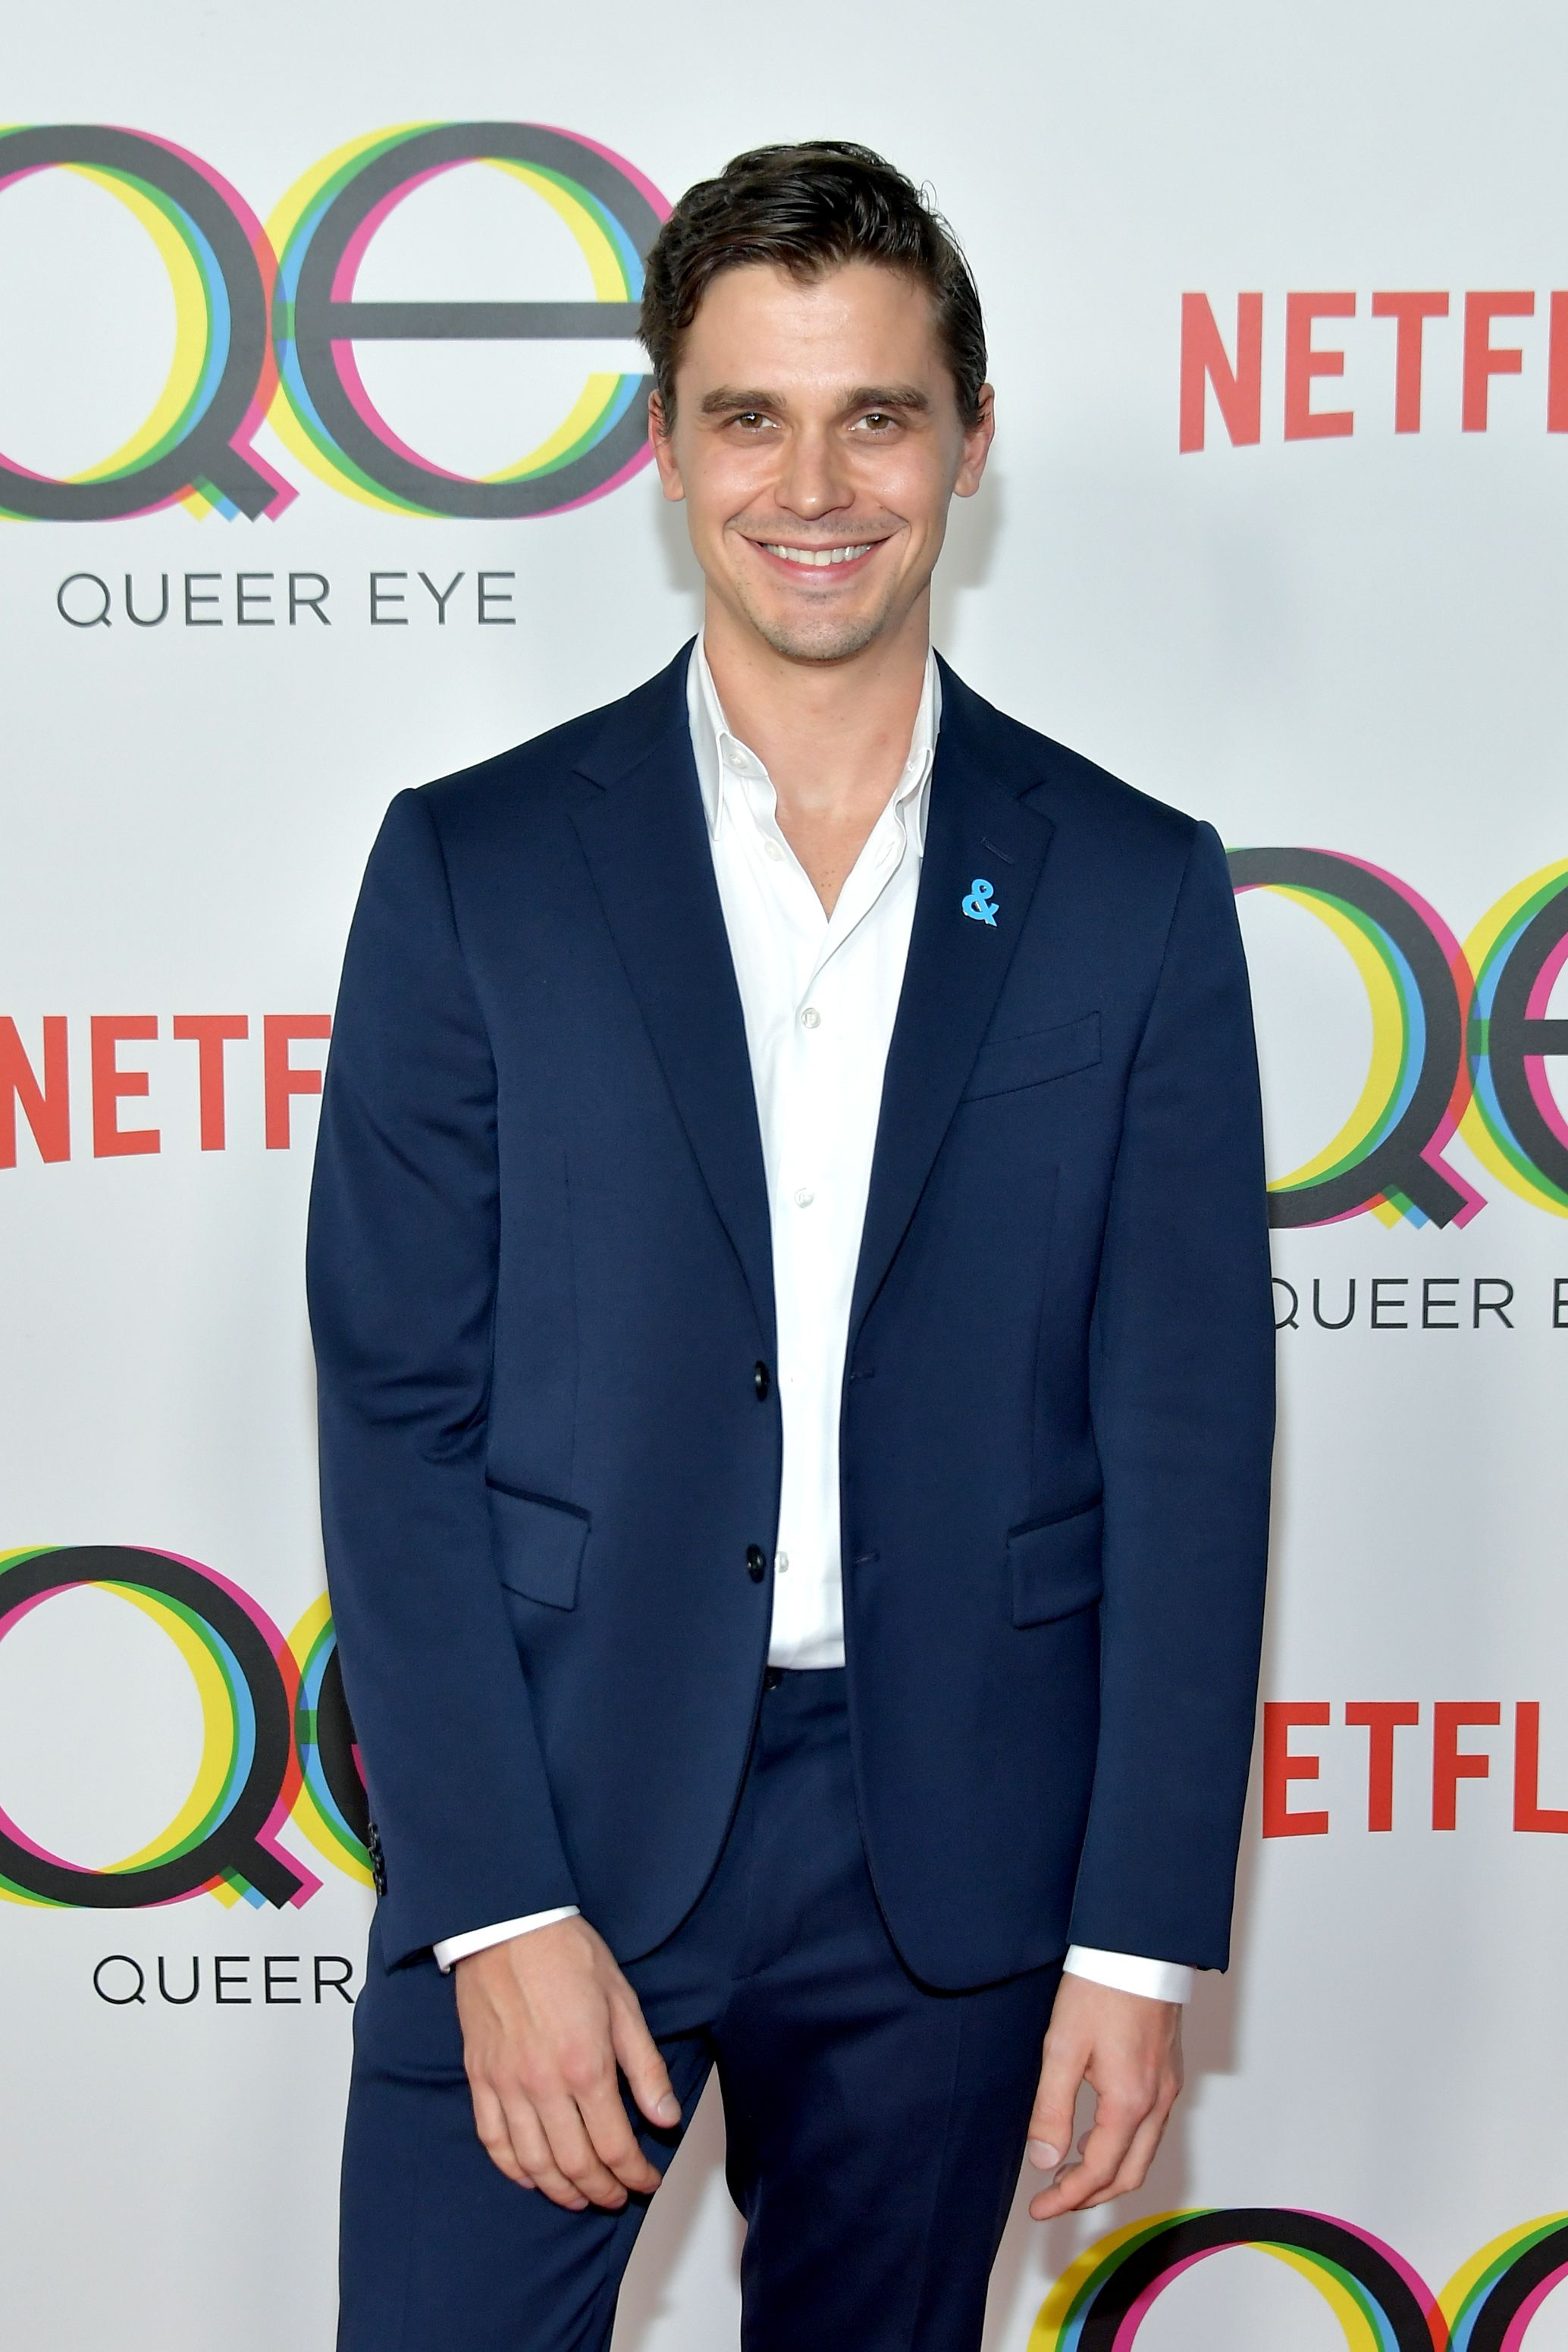 Antoni Porowski Just Explained Why You Need a 'Safe Move' While Being Choked